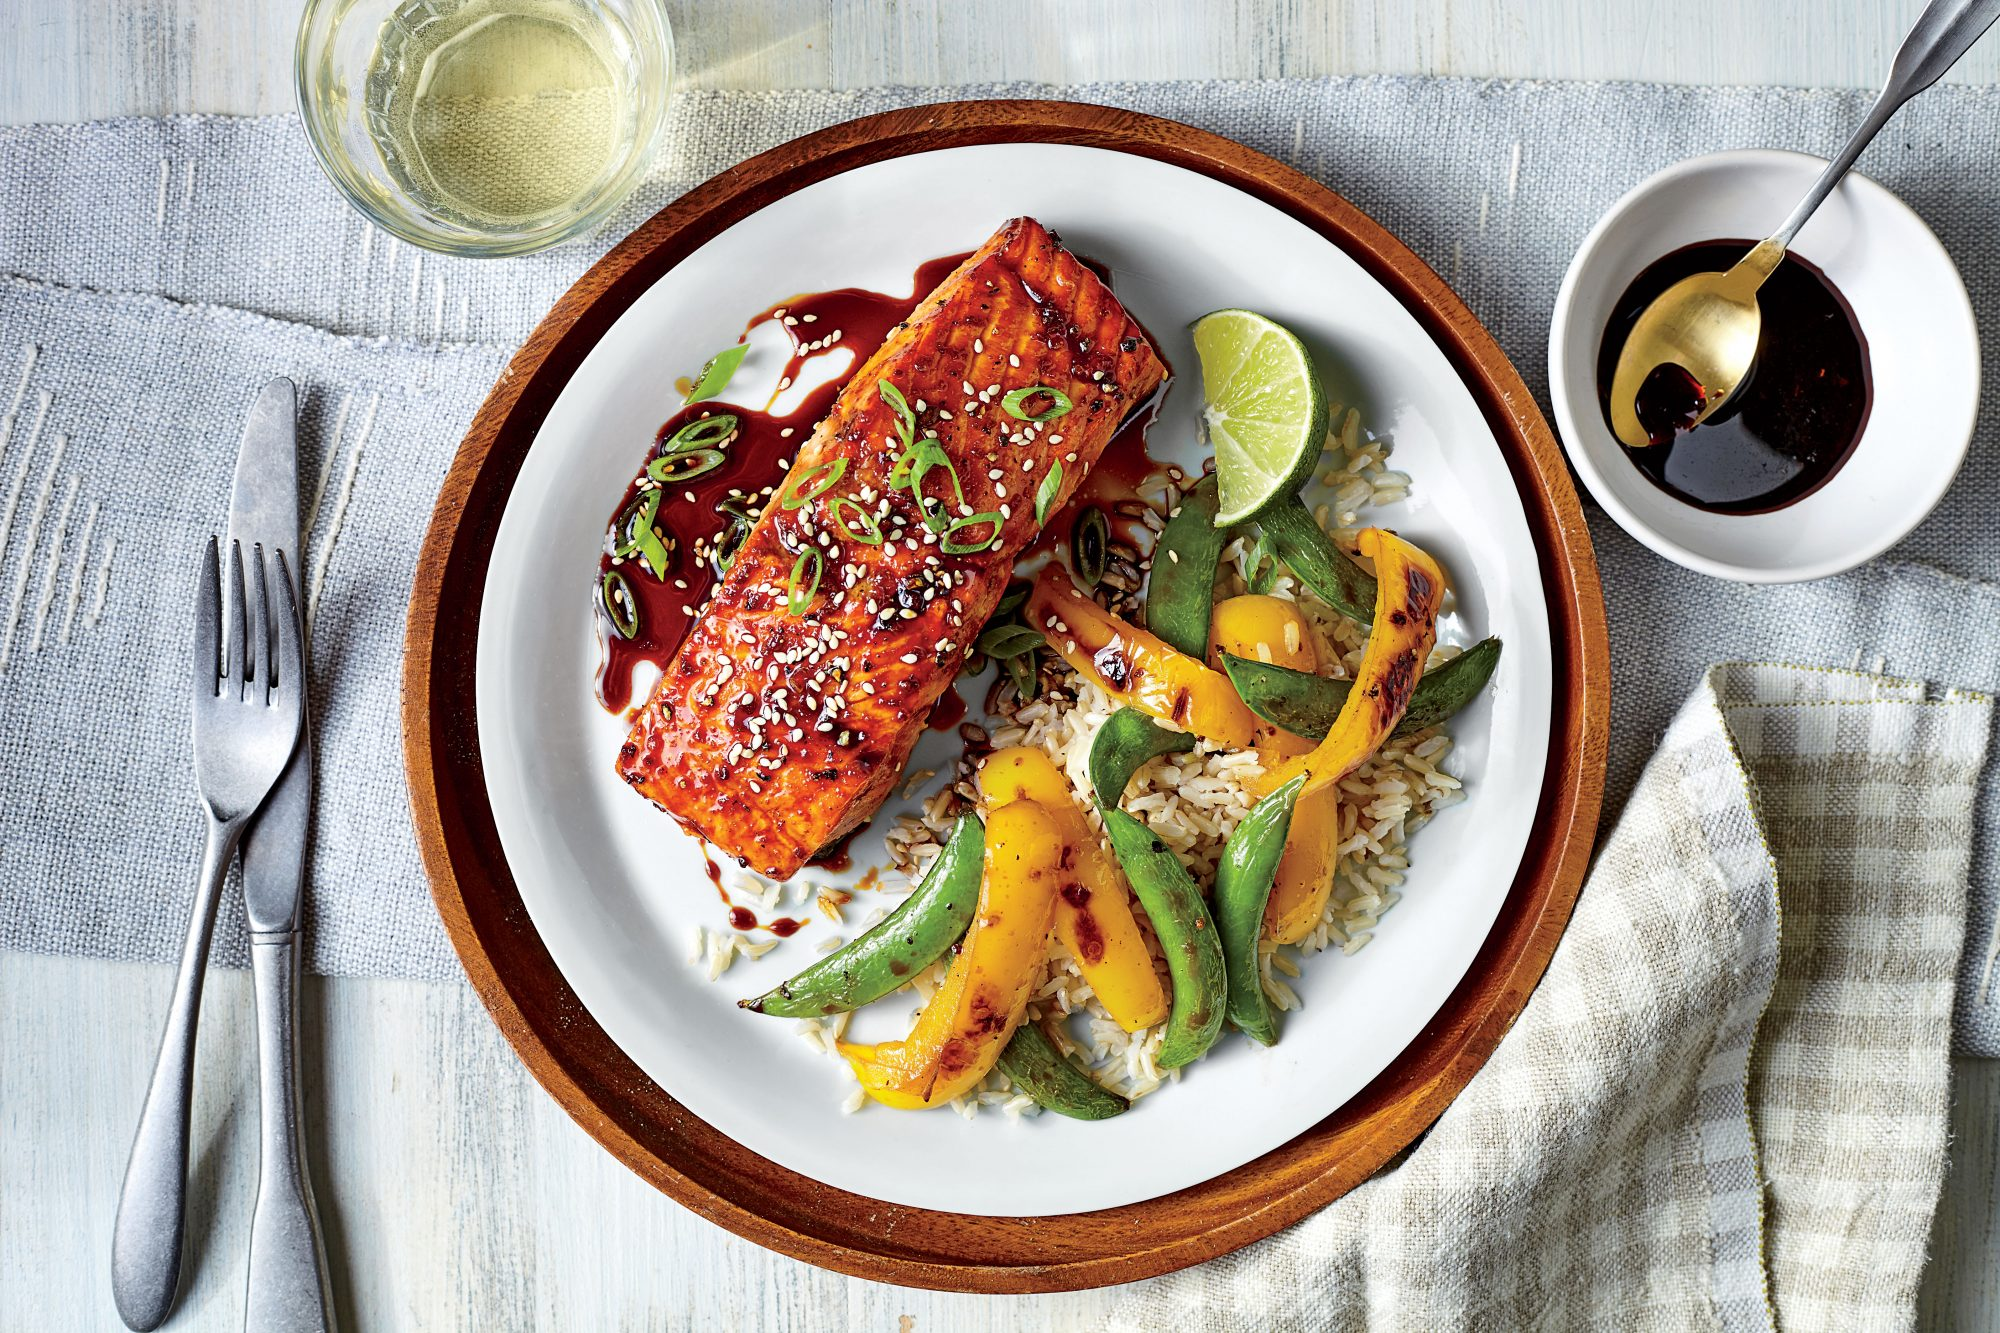 Molasses-Soy Glazed Salmon and Vegetables Recipe